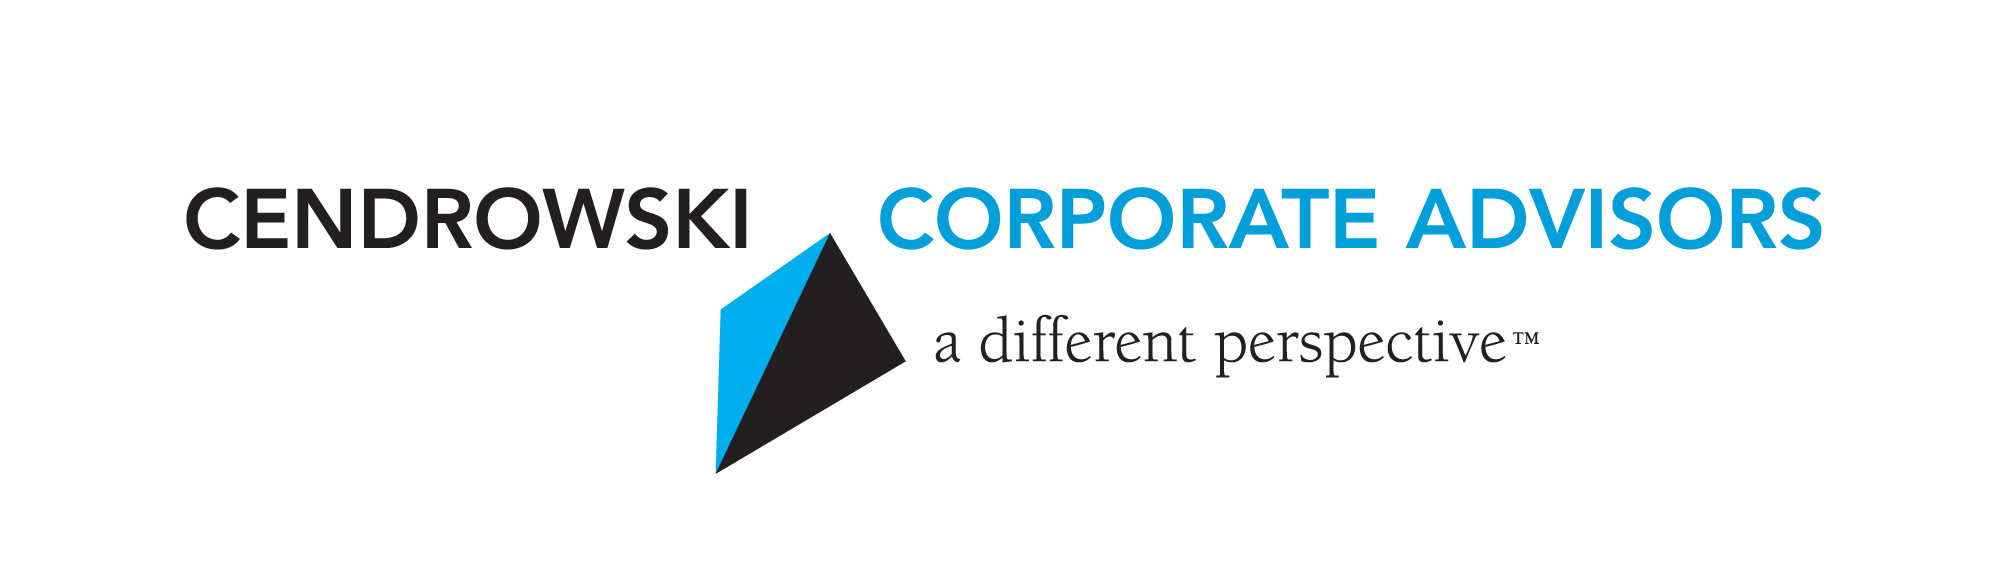 Cendrowski Corporate Advisors